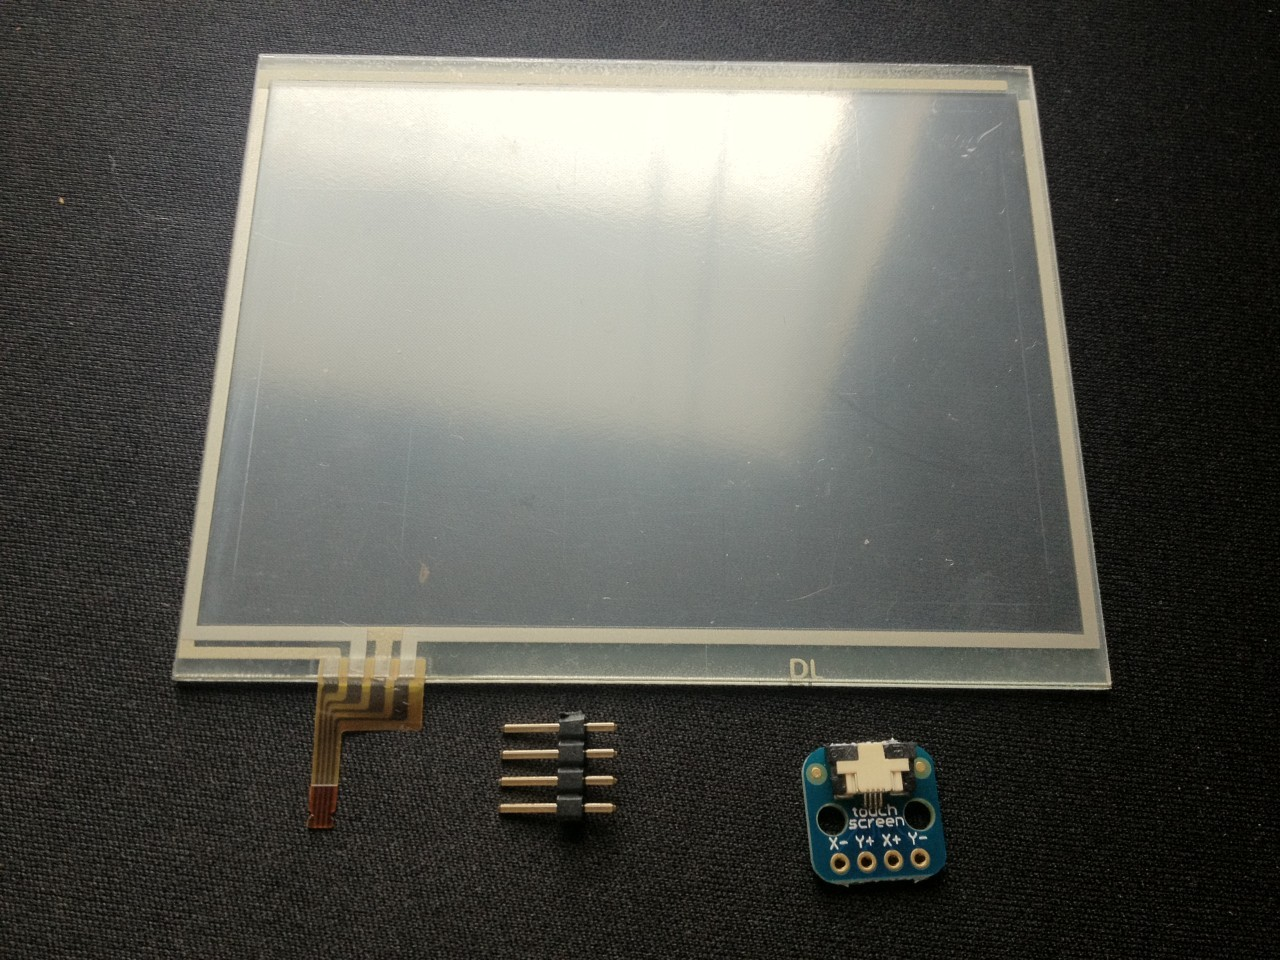 A Nintendo DS XL digitizer (touchscreen). Note that this is just the touch portion, there is no display.